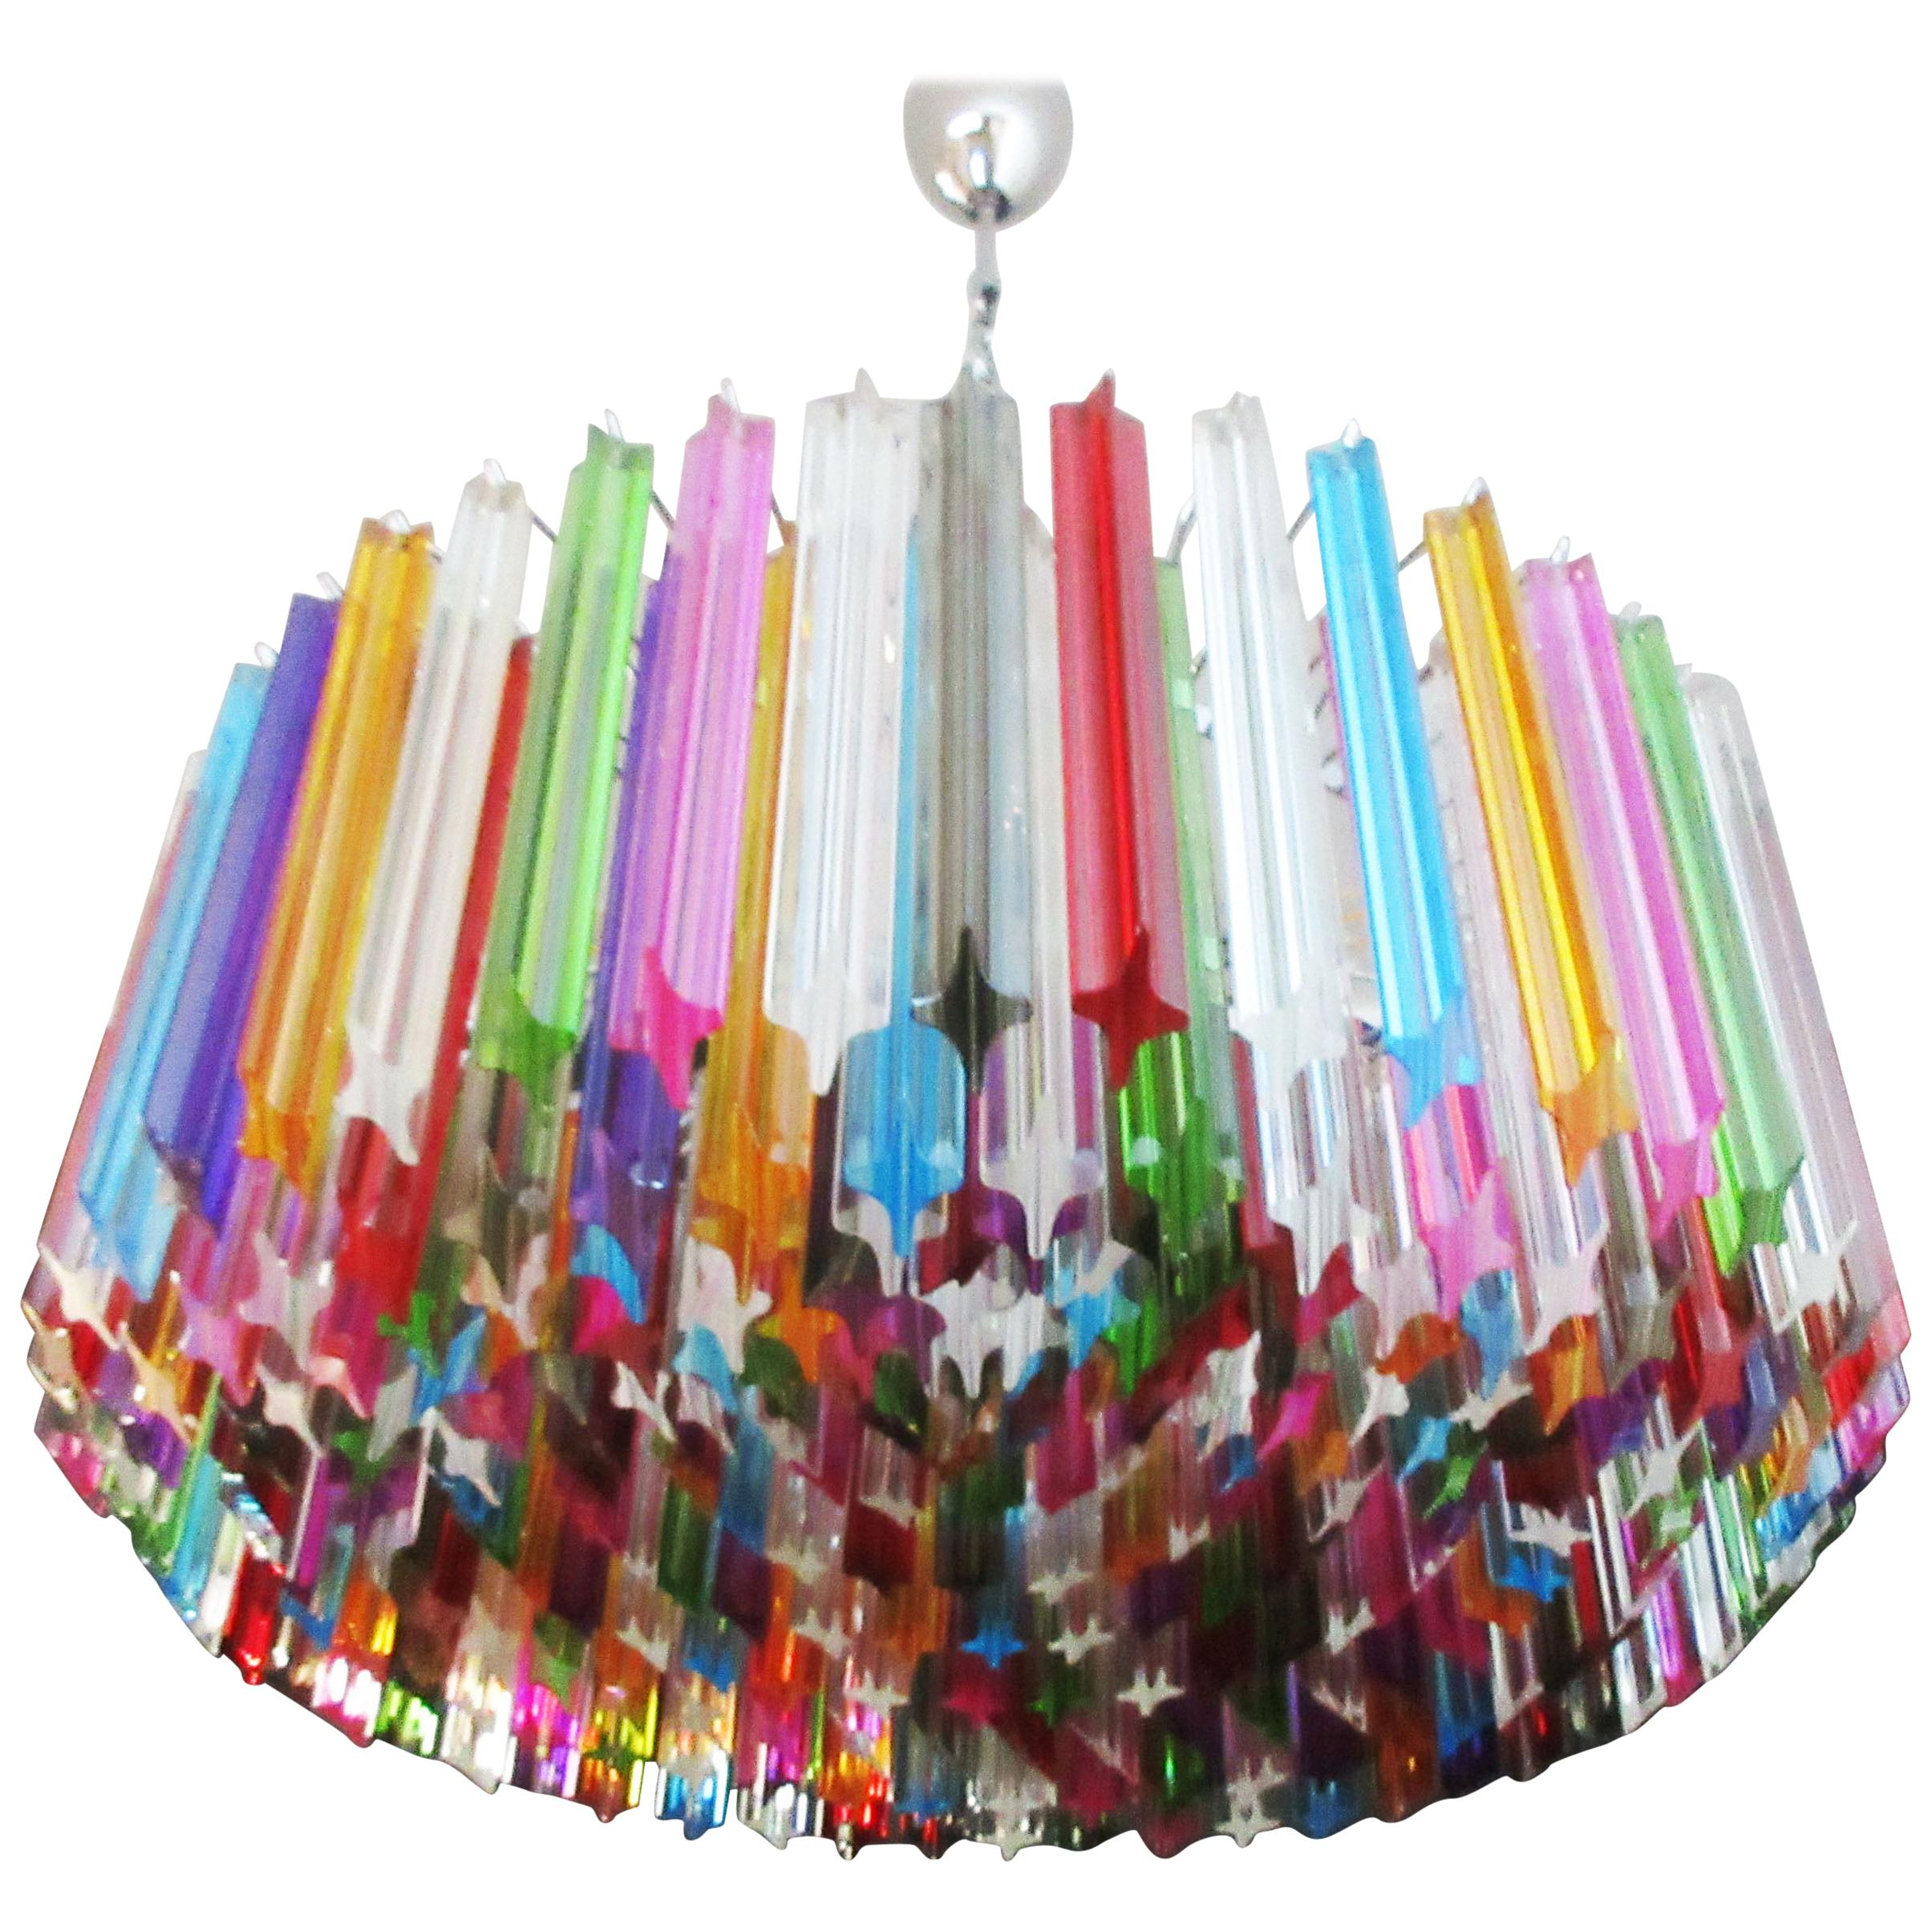 Large Triedri Murano Glass Chandelier, 265 Multicolored Prism